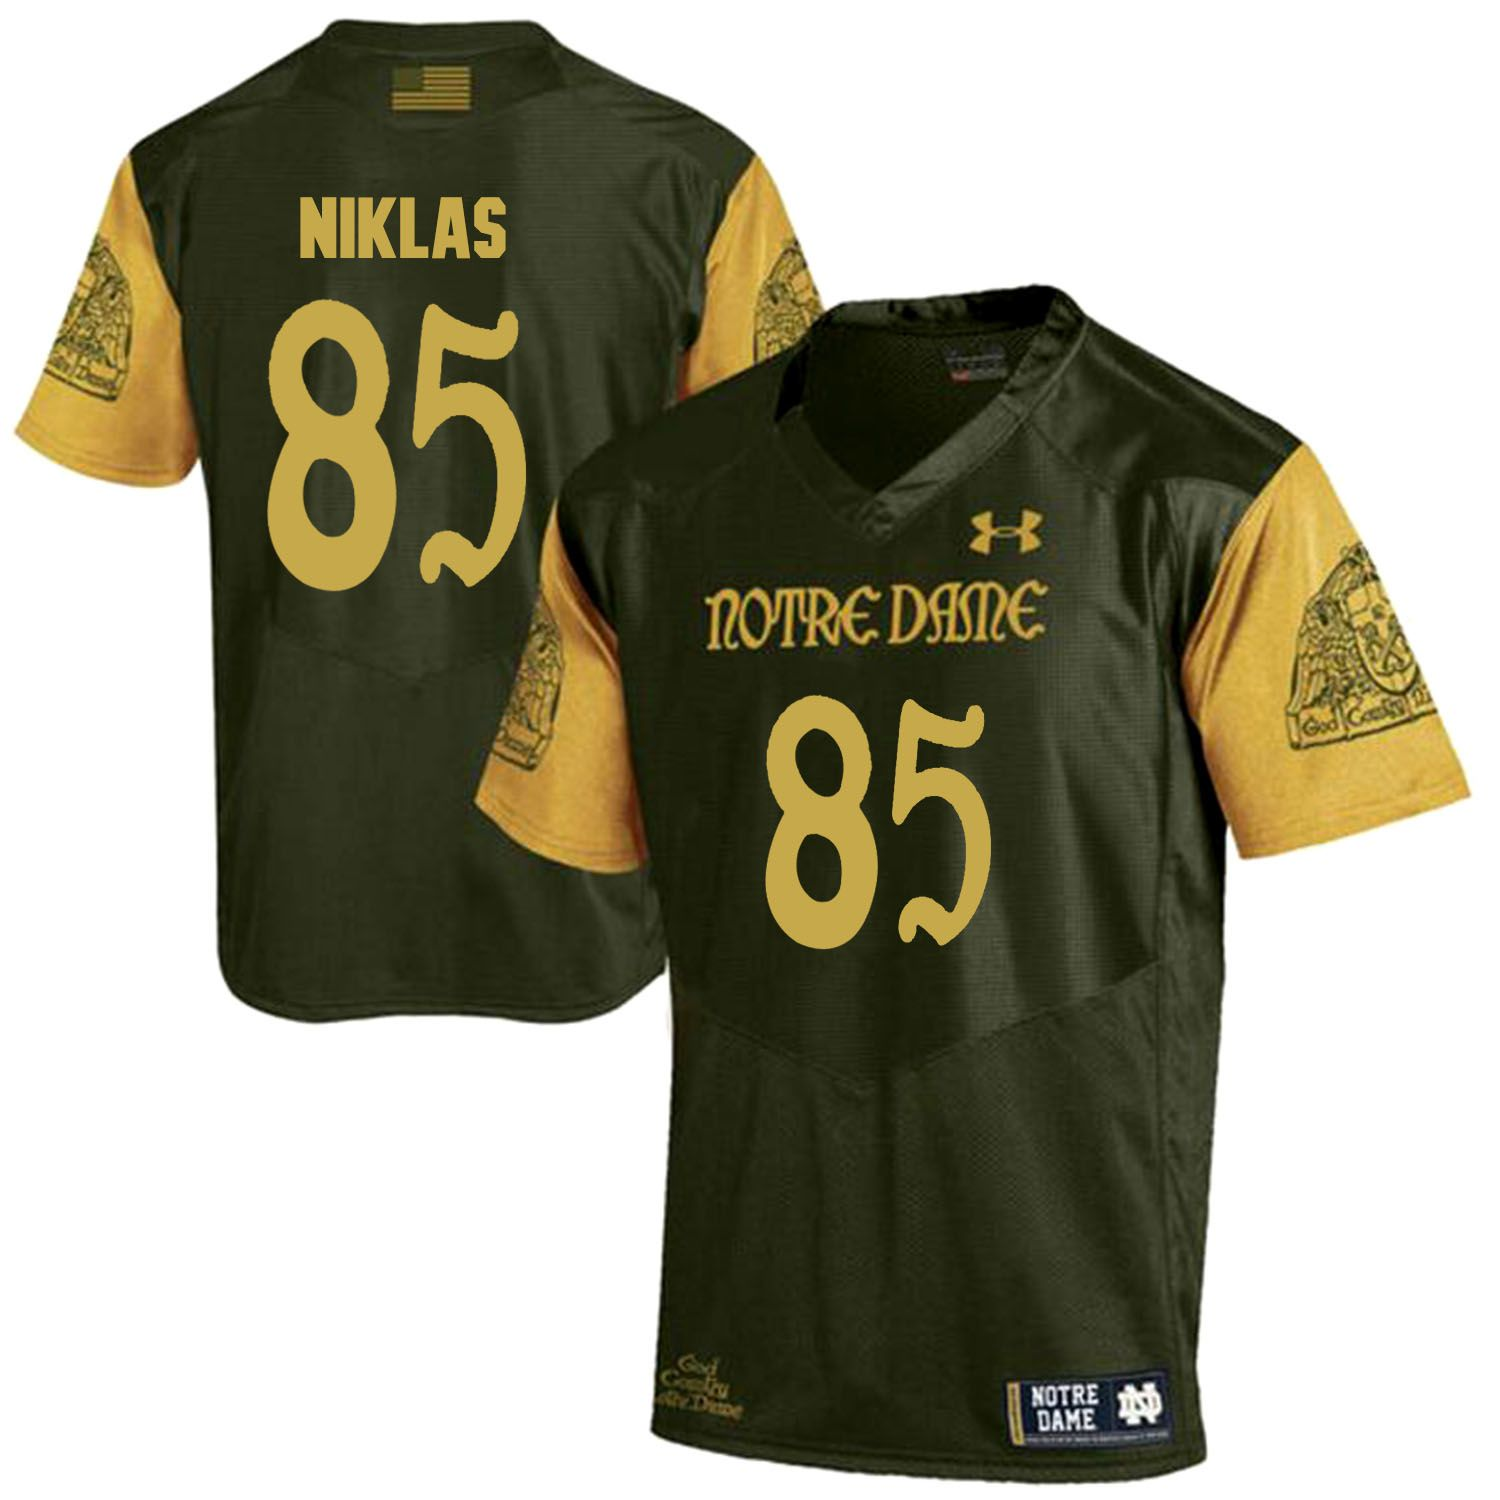 Men Norte Dame Fighting Irish 85 Niklas Green Customized NCAA Jerseys